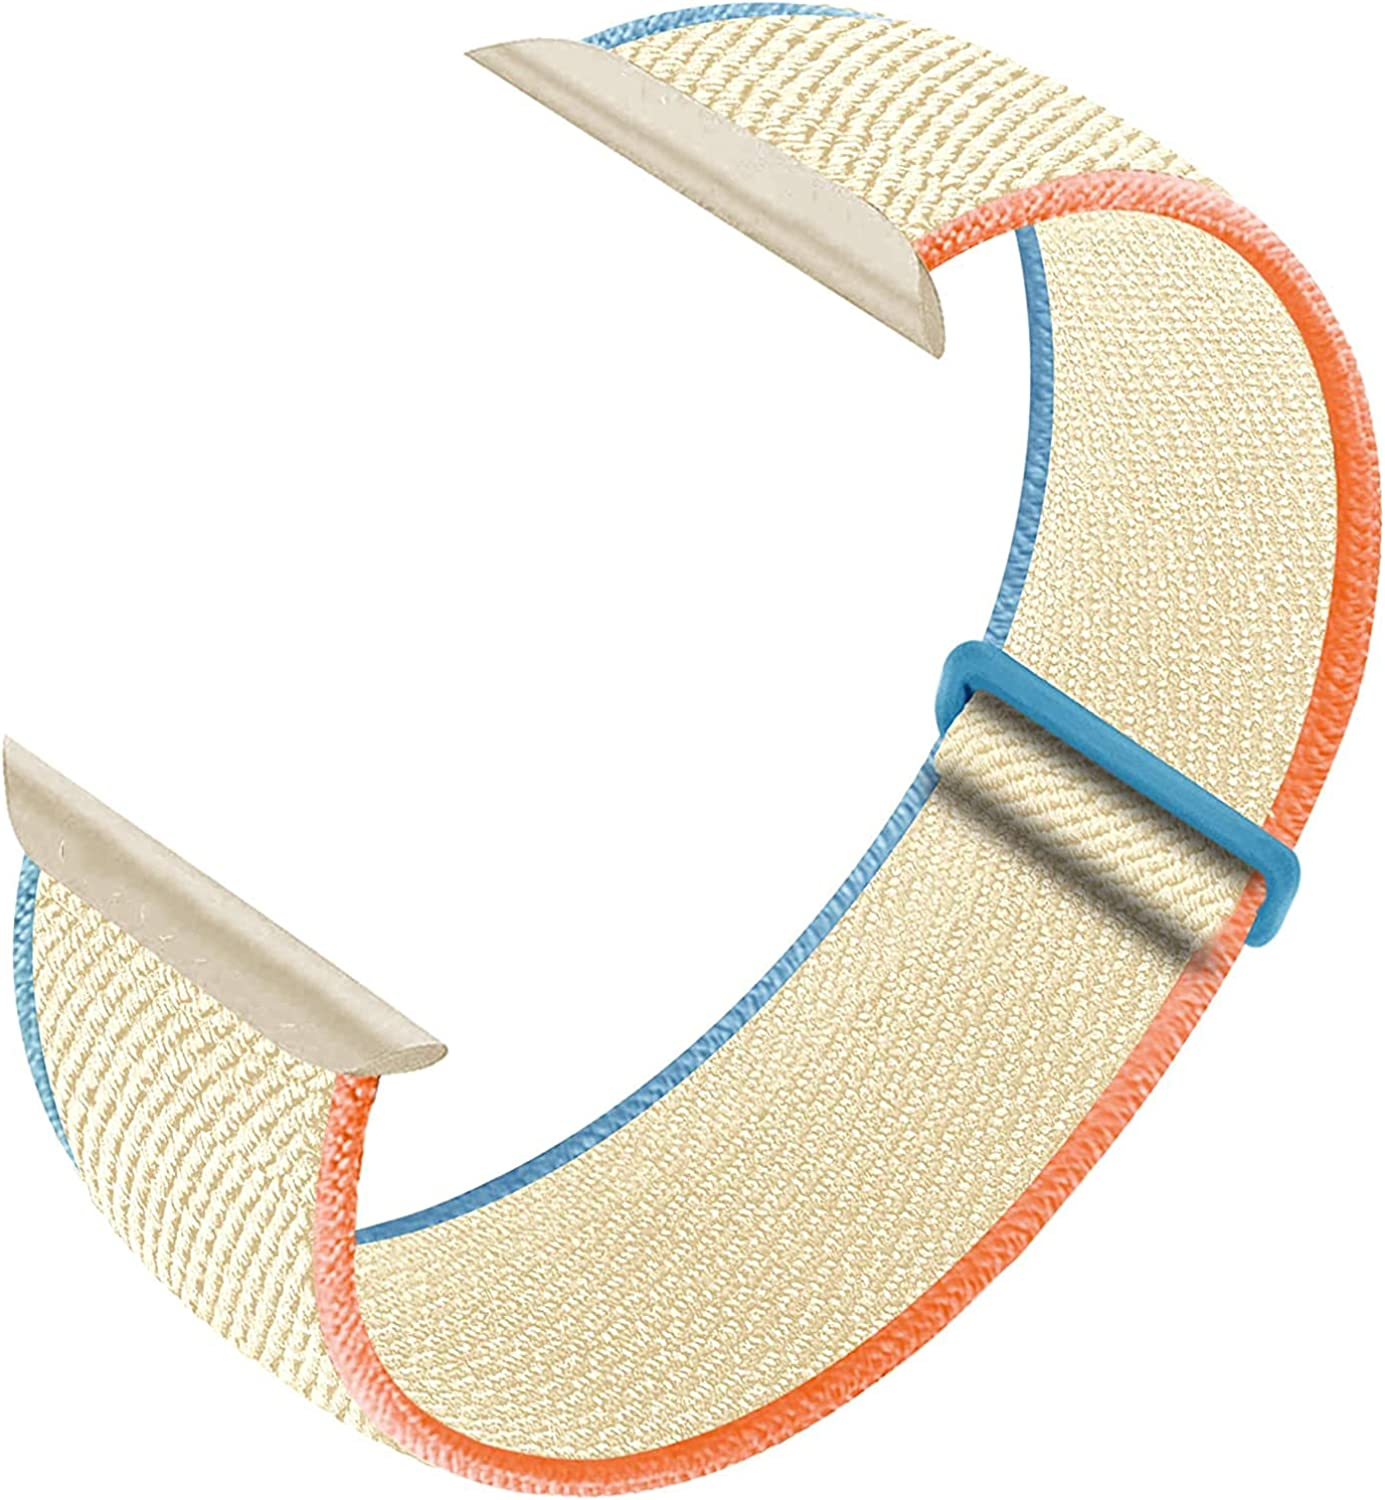 Nylon Sport Loop Band Compatible with Apple Watch Bands 38mm 40mm 42mm 44mm, Women Men Adjustable Velcro Braided Elastic Wristbands Replacement Band Compatible for iWatch Series 6 5 4 3 2 1 SE